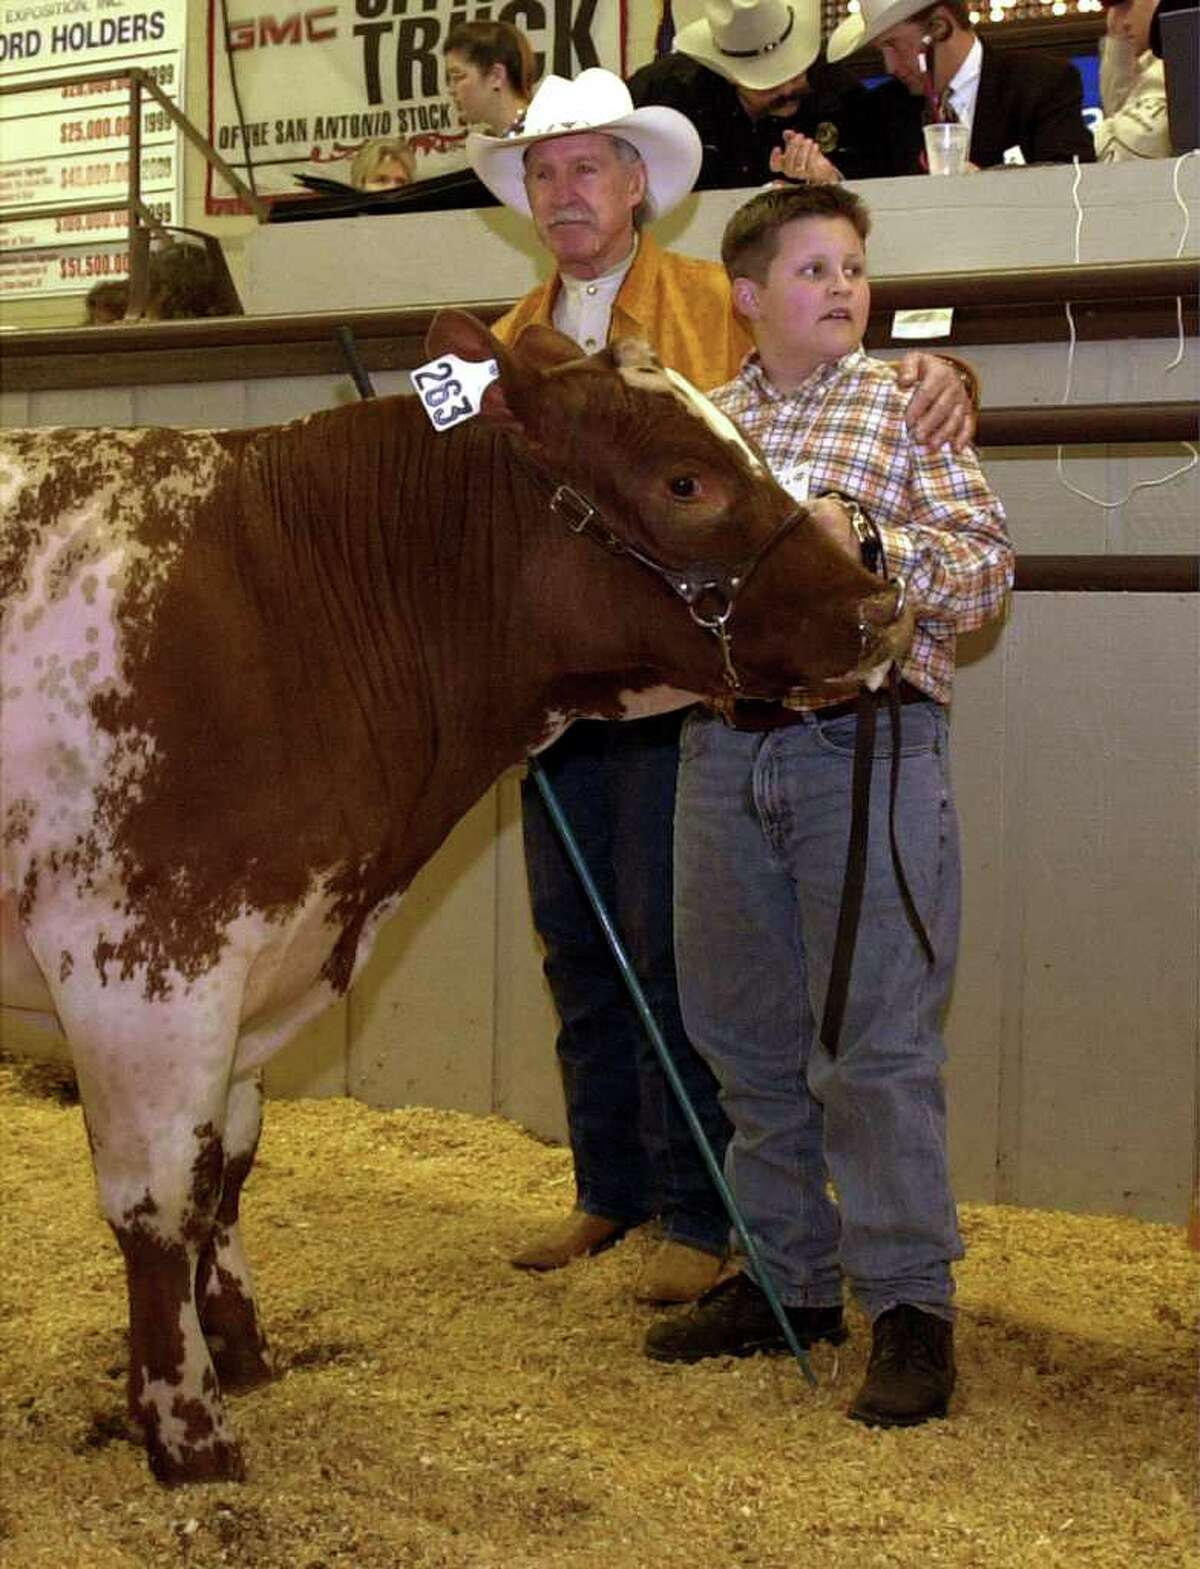 Richard Wallrath (center) stands with 10-year-old Stetson Copus and his grand champion steer, Super Fly, after Wallrath made the highest bid for the steer at $87,500 at the junior live stock auction on Saturday, February 17, 2001.